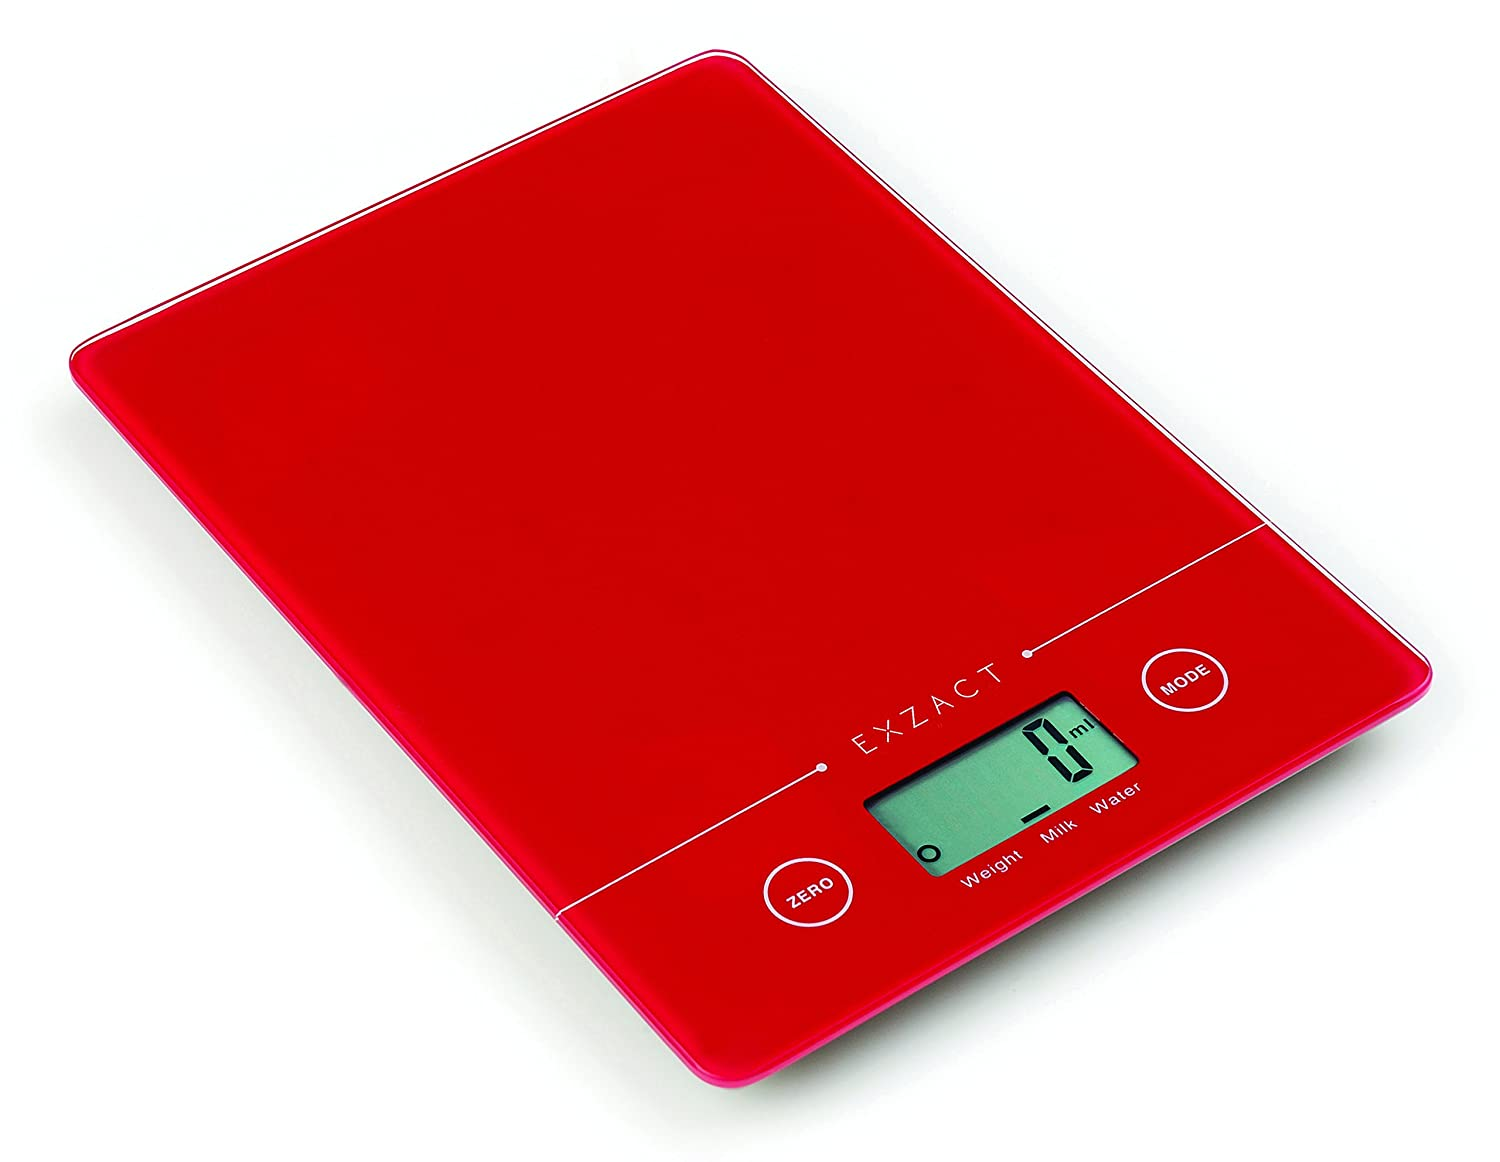 Exzact EX9150 Super Slim (1.4 CM) Electronic Kitchen Scale / Food Weighing Scale / Digital Scale - Tempered Glass Platform - Touch Button - Battery Included - 5kg/11lb (Black) Exerz Limited